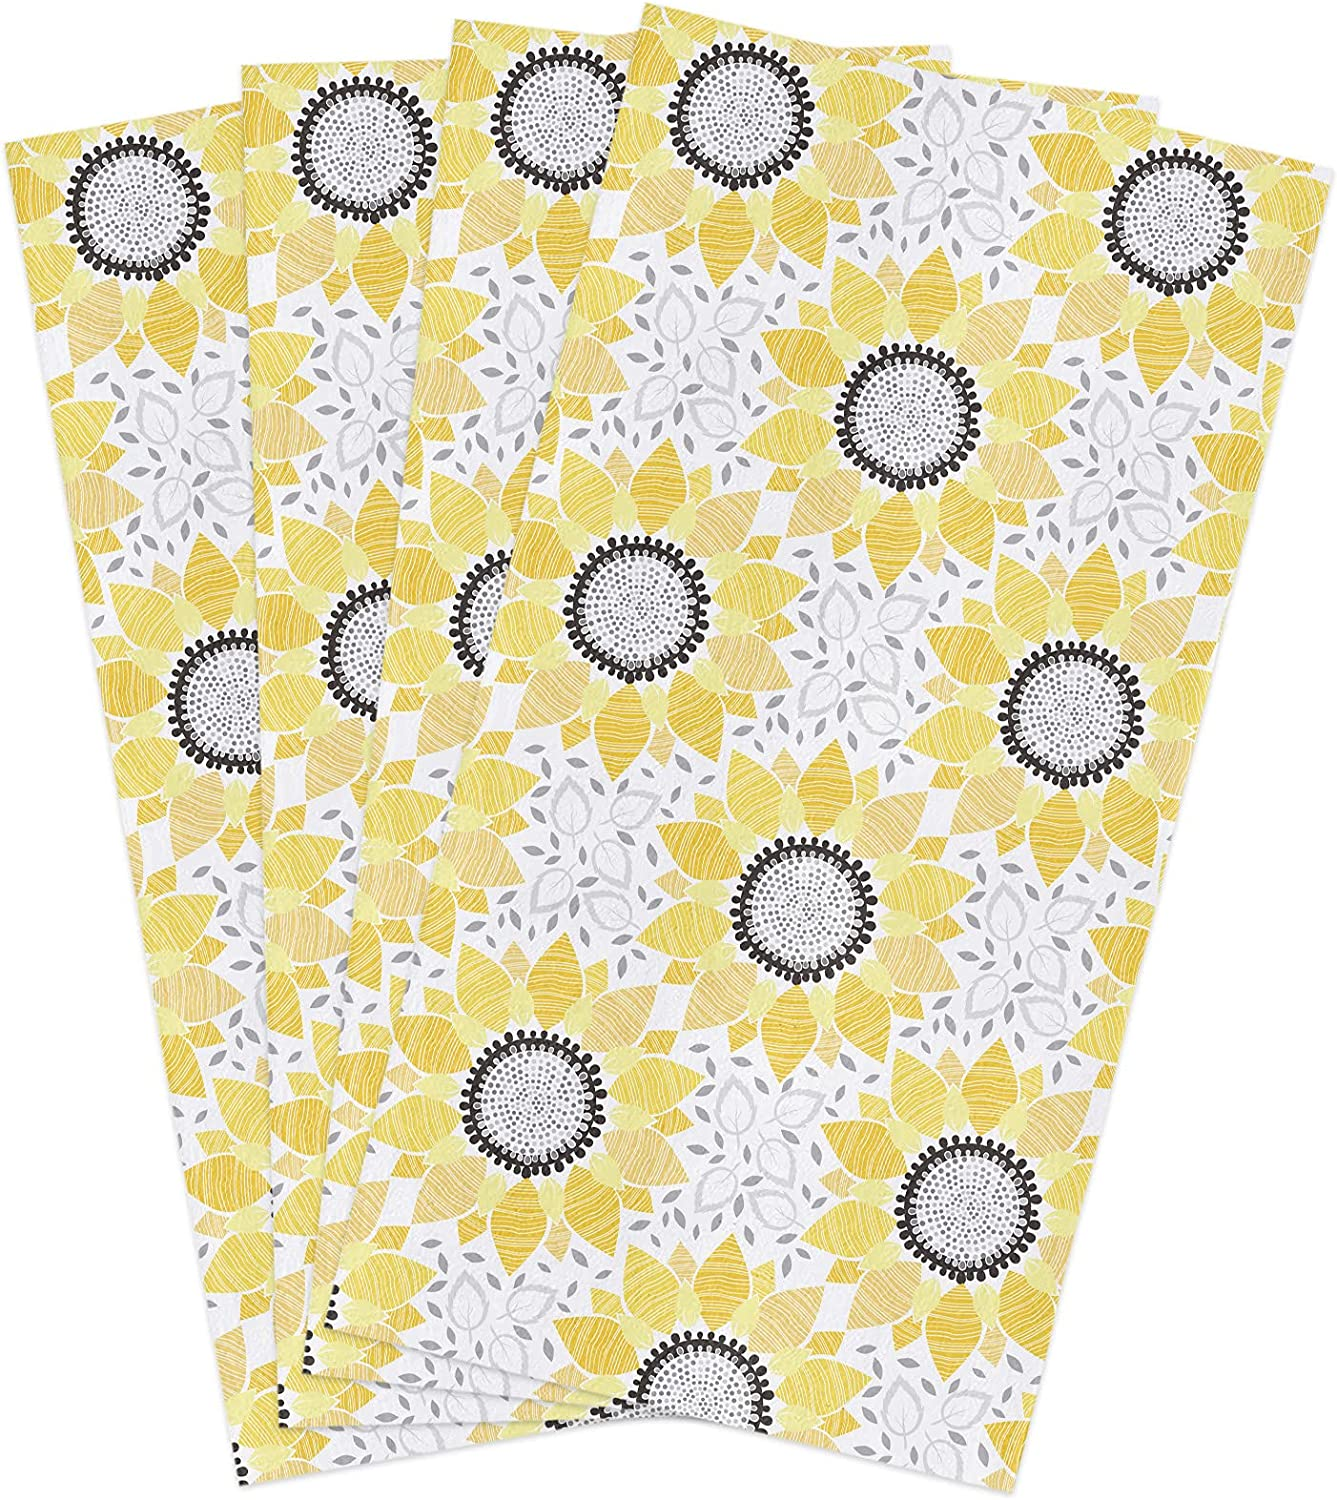 trust Miami Mall Kitchen Towels Set Abstract Sunflower Dish Towel B Yellow Floral